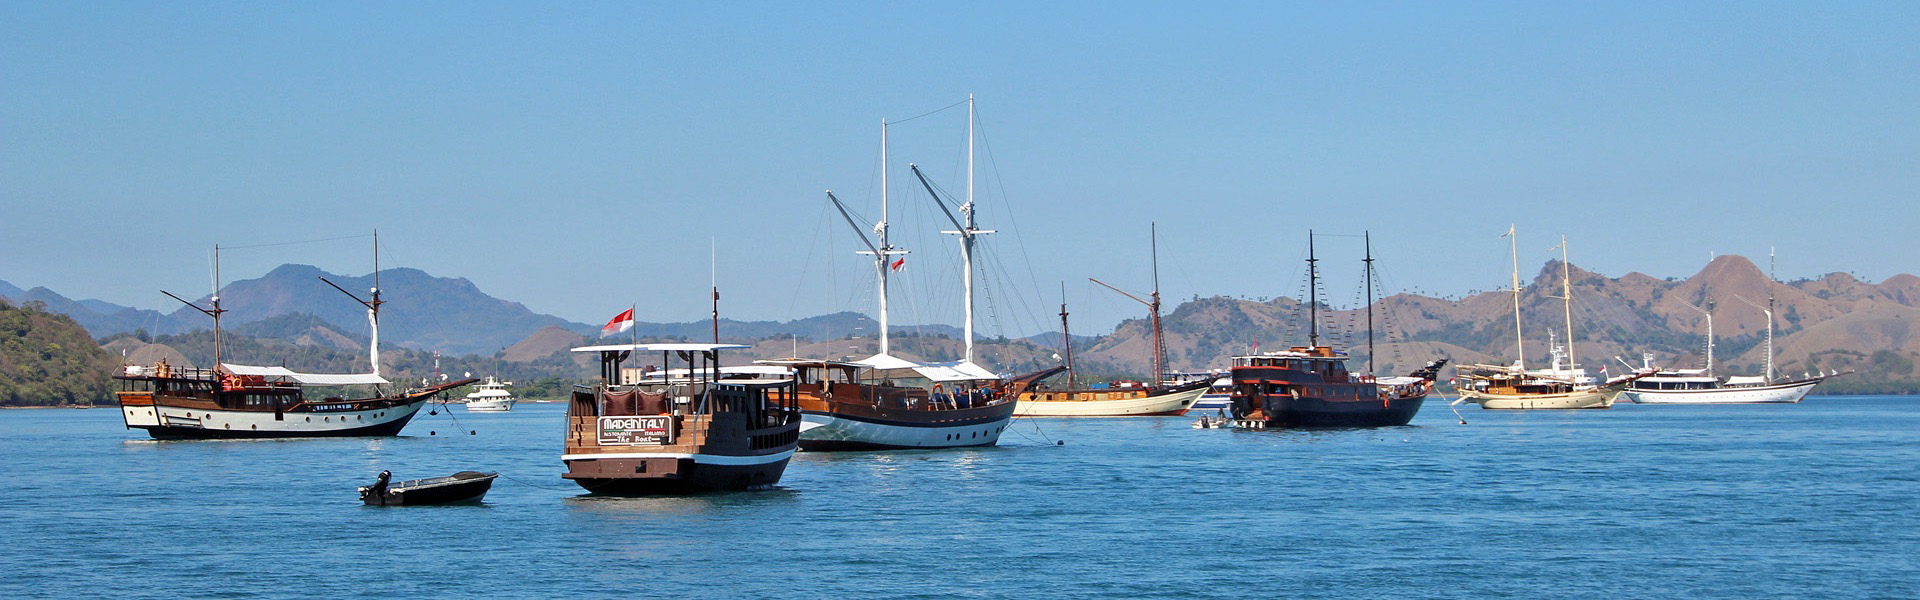 Liveaboard dive boats at anchor in Labuan Bajo Harbour, Komodo Islands